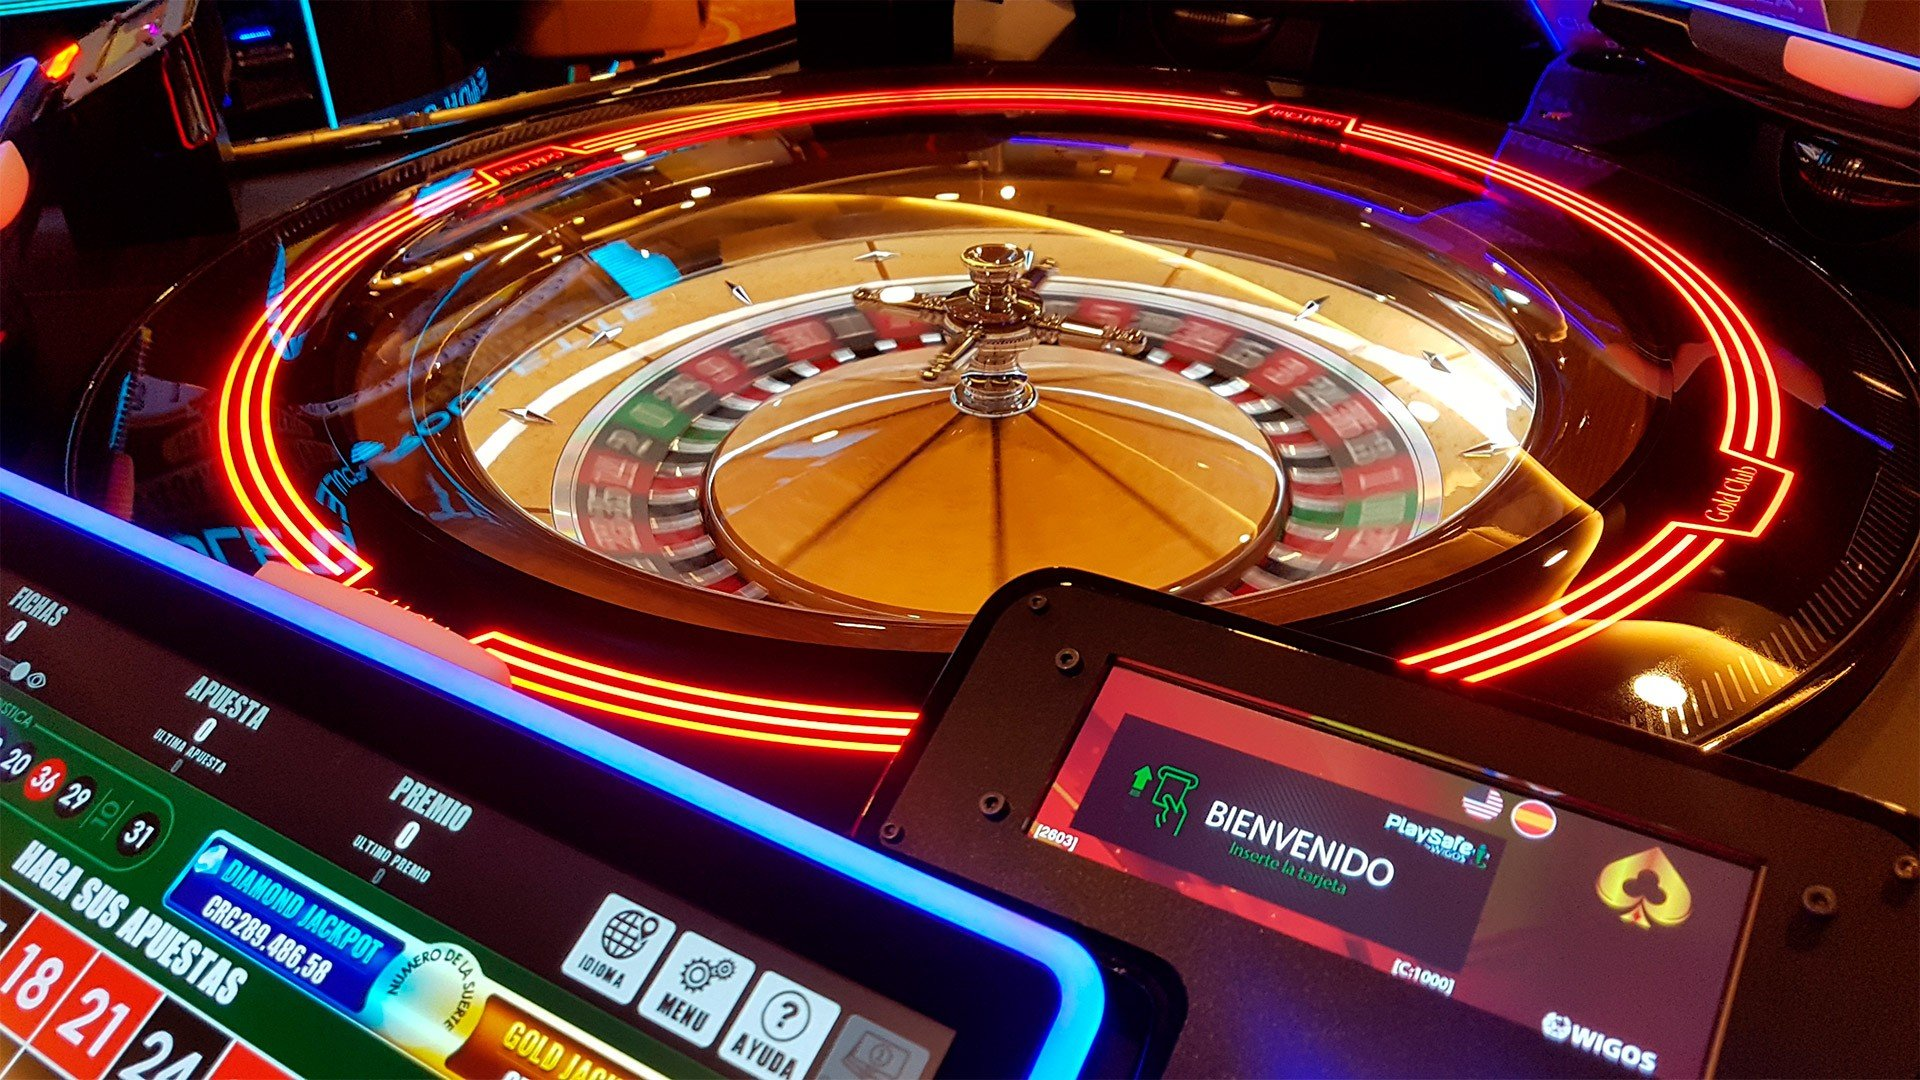 What are the Most Popular Online Casino Games Today?